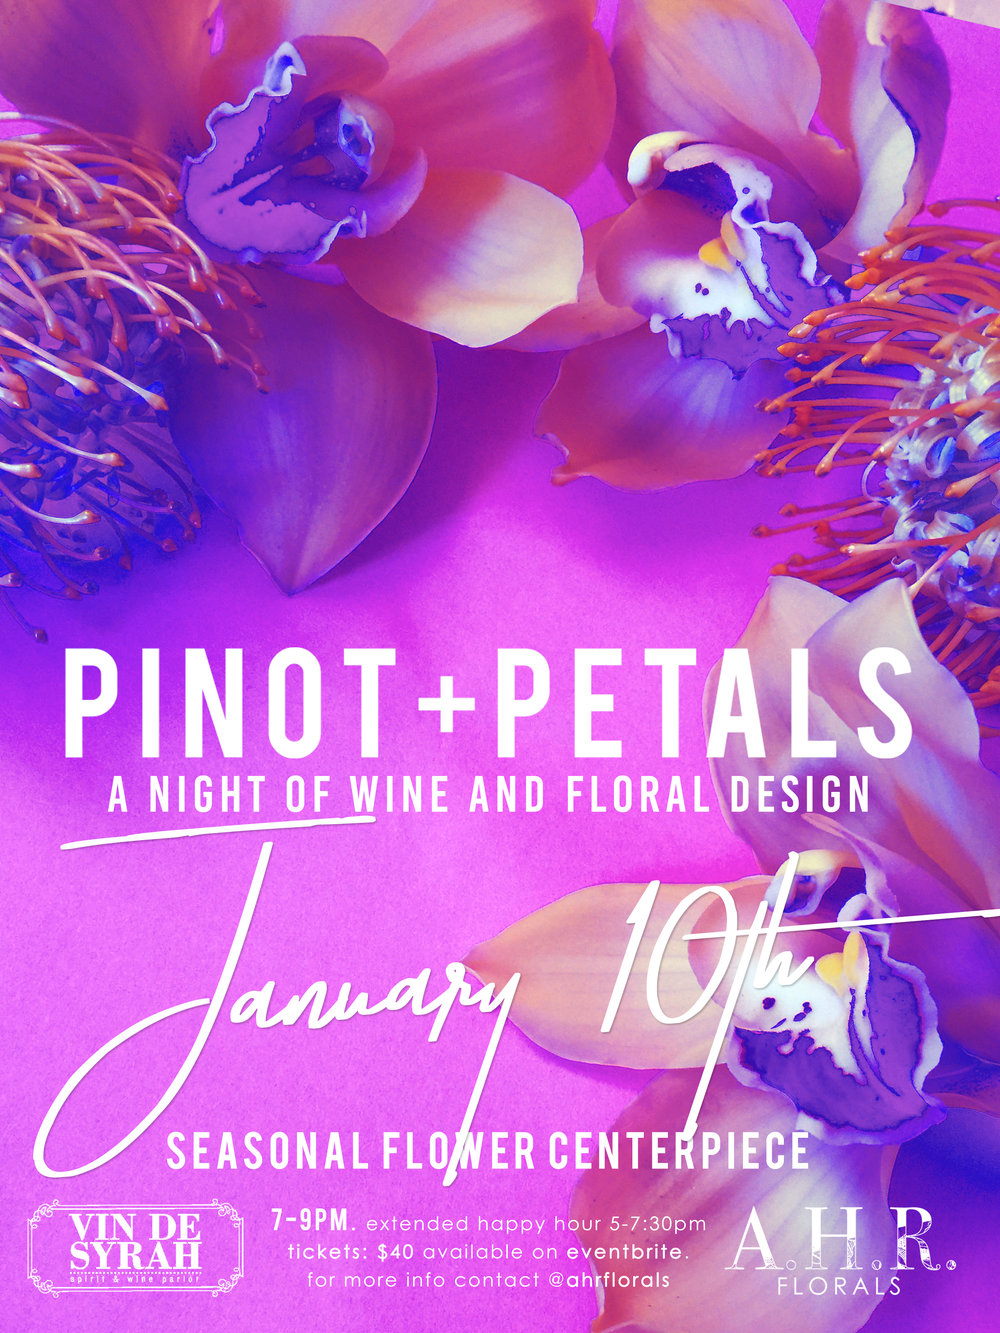 ahr-florals-pinot-and-petals-wine-and-floral-design-january.jpg